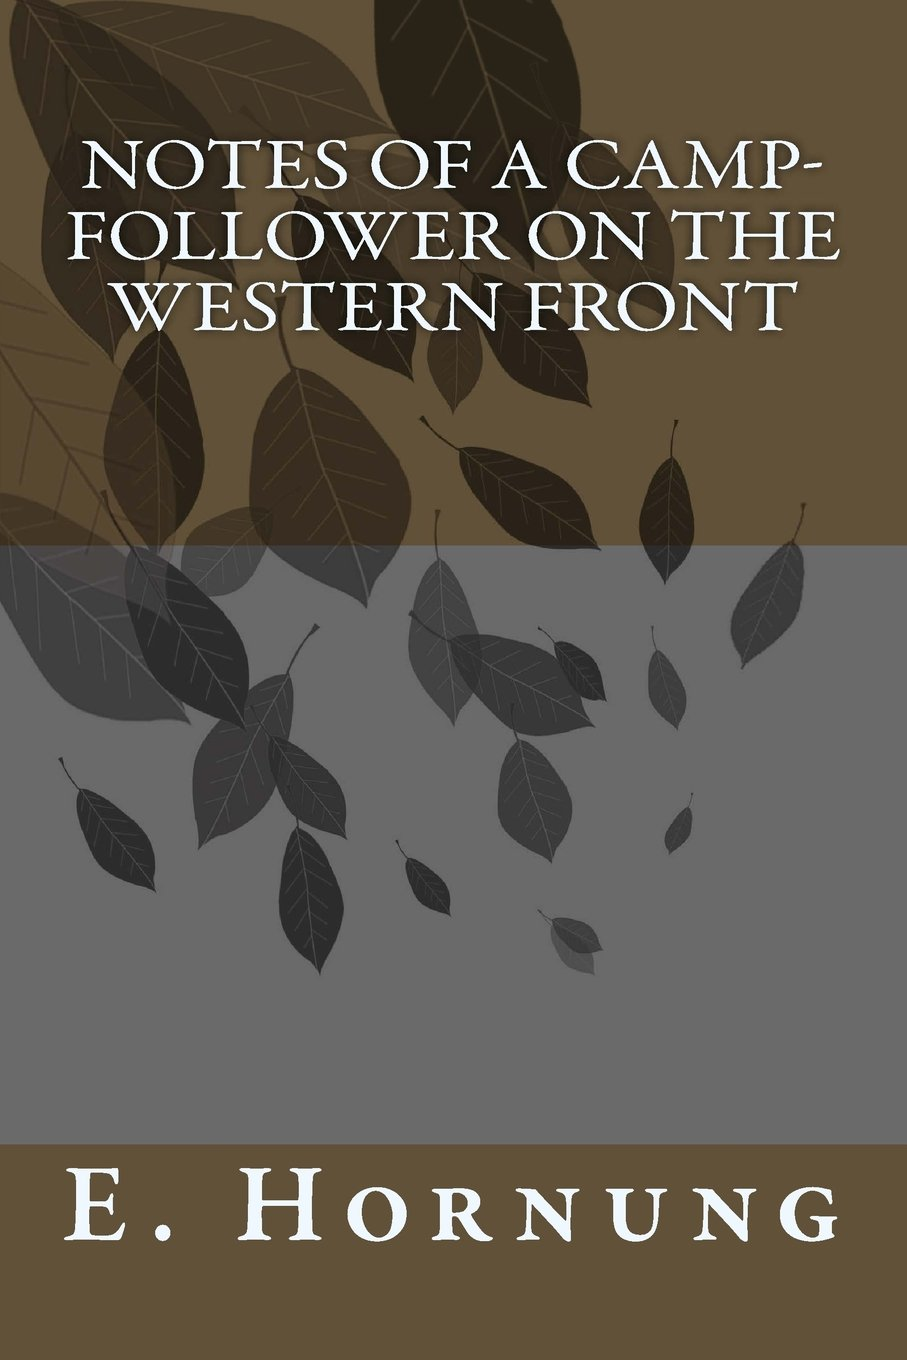 Notes of a Camp-Follower on the Western Front pdf